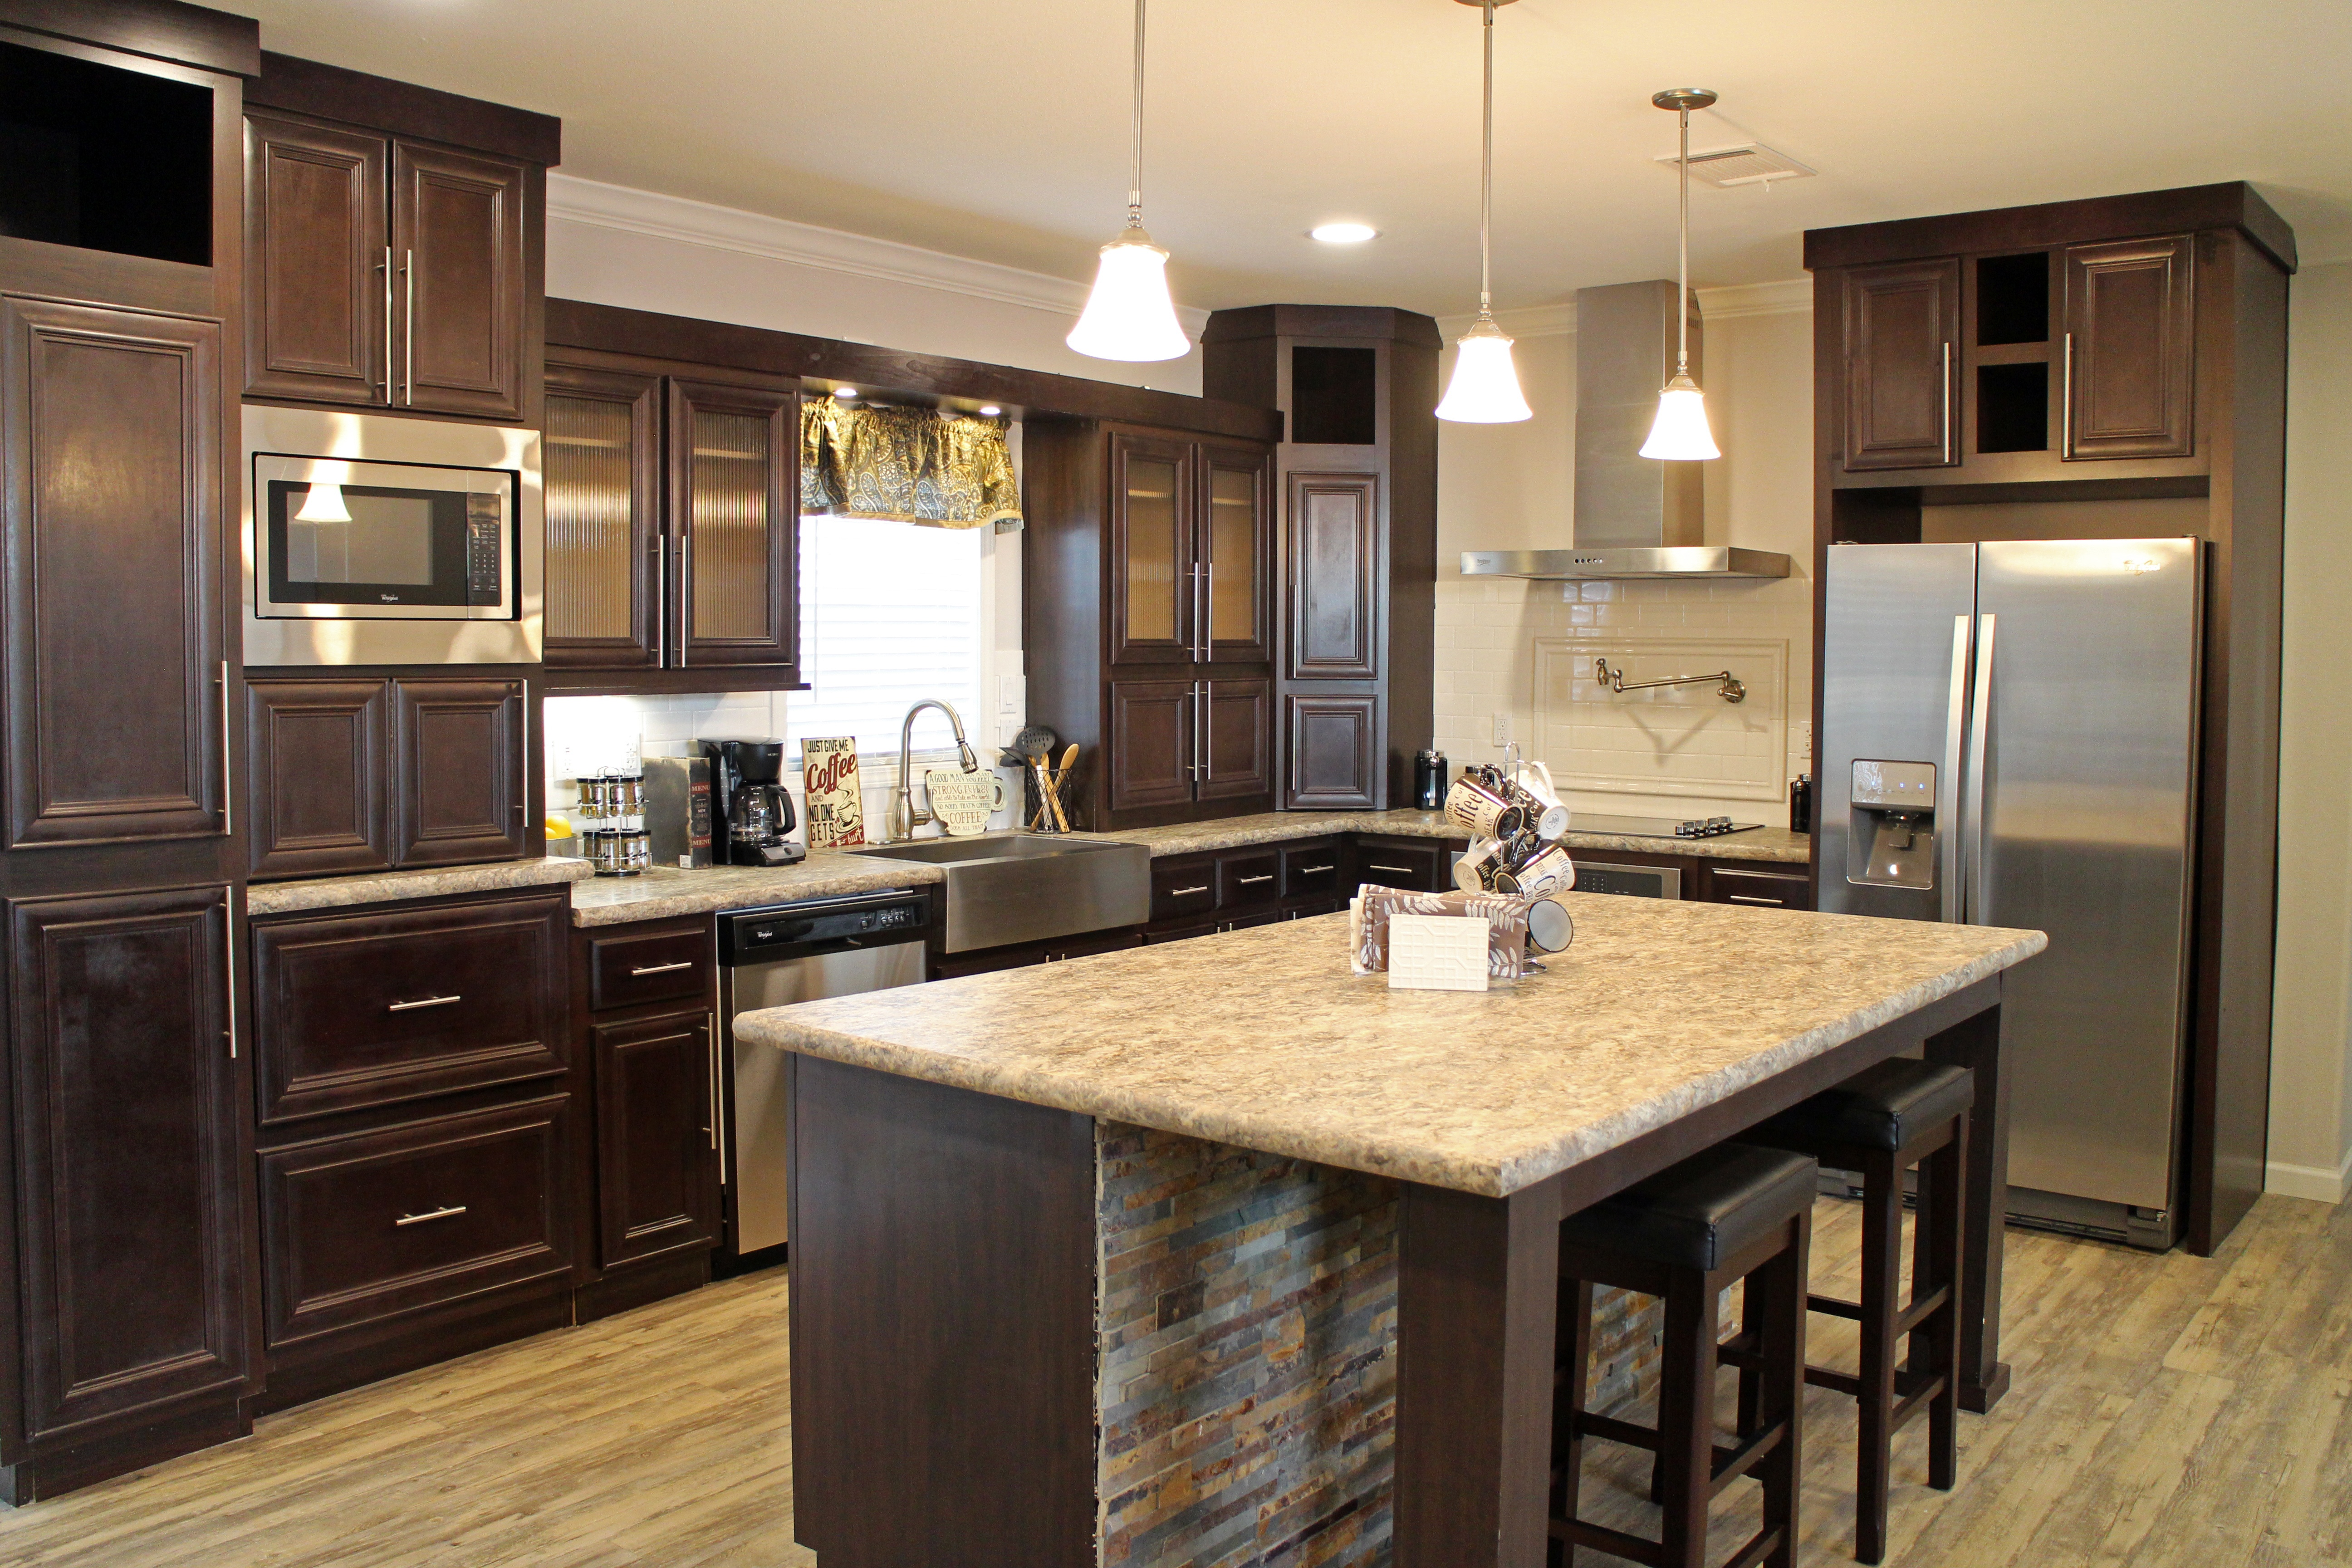 What 39 s the difference between a modular home and a - Difference between manufactured home and modular home ...